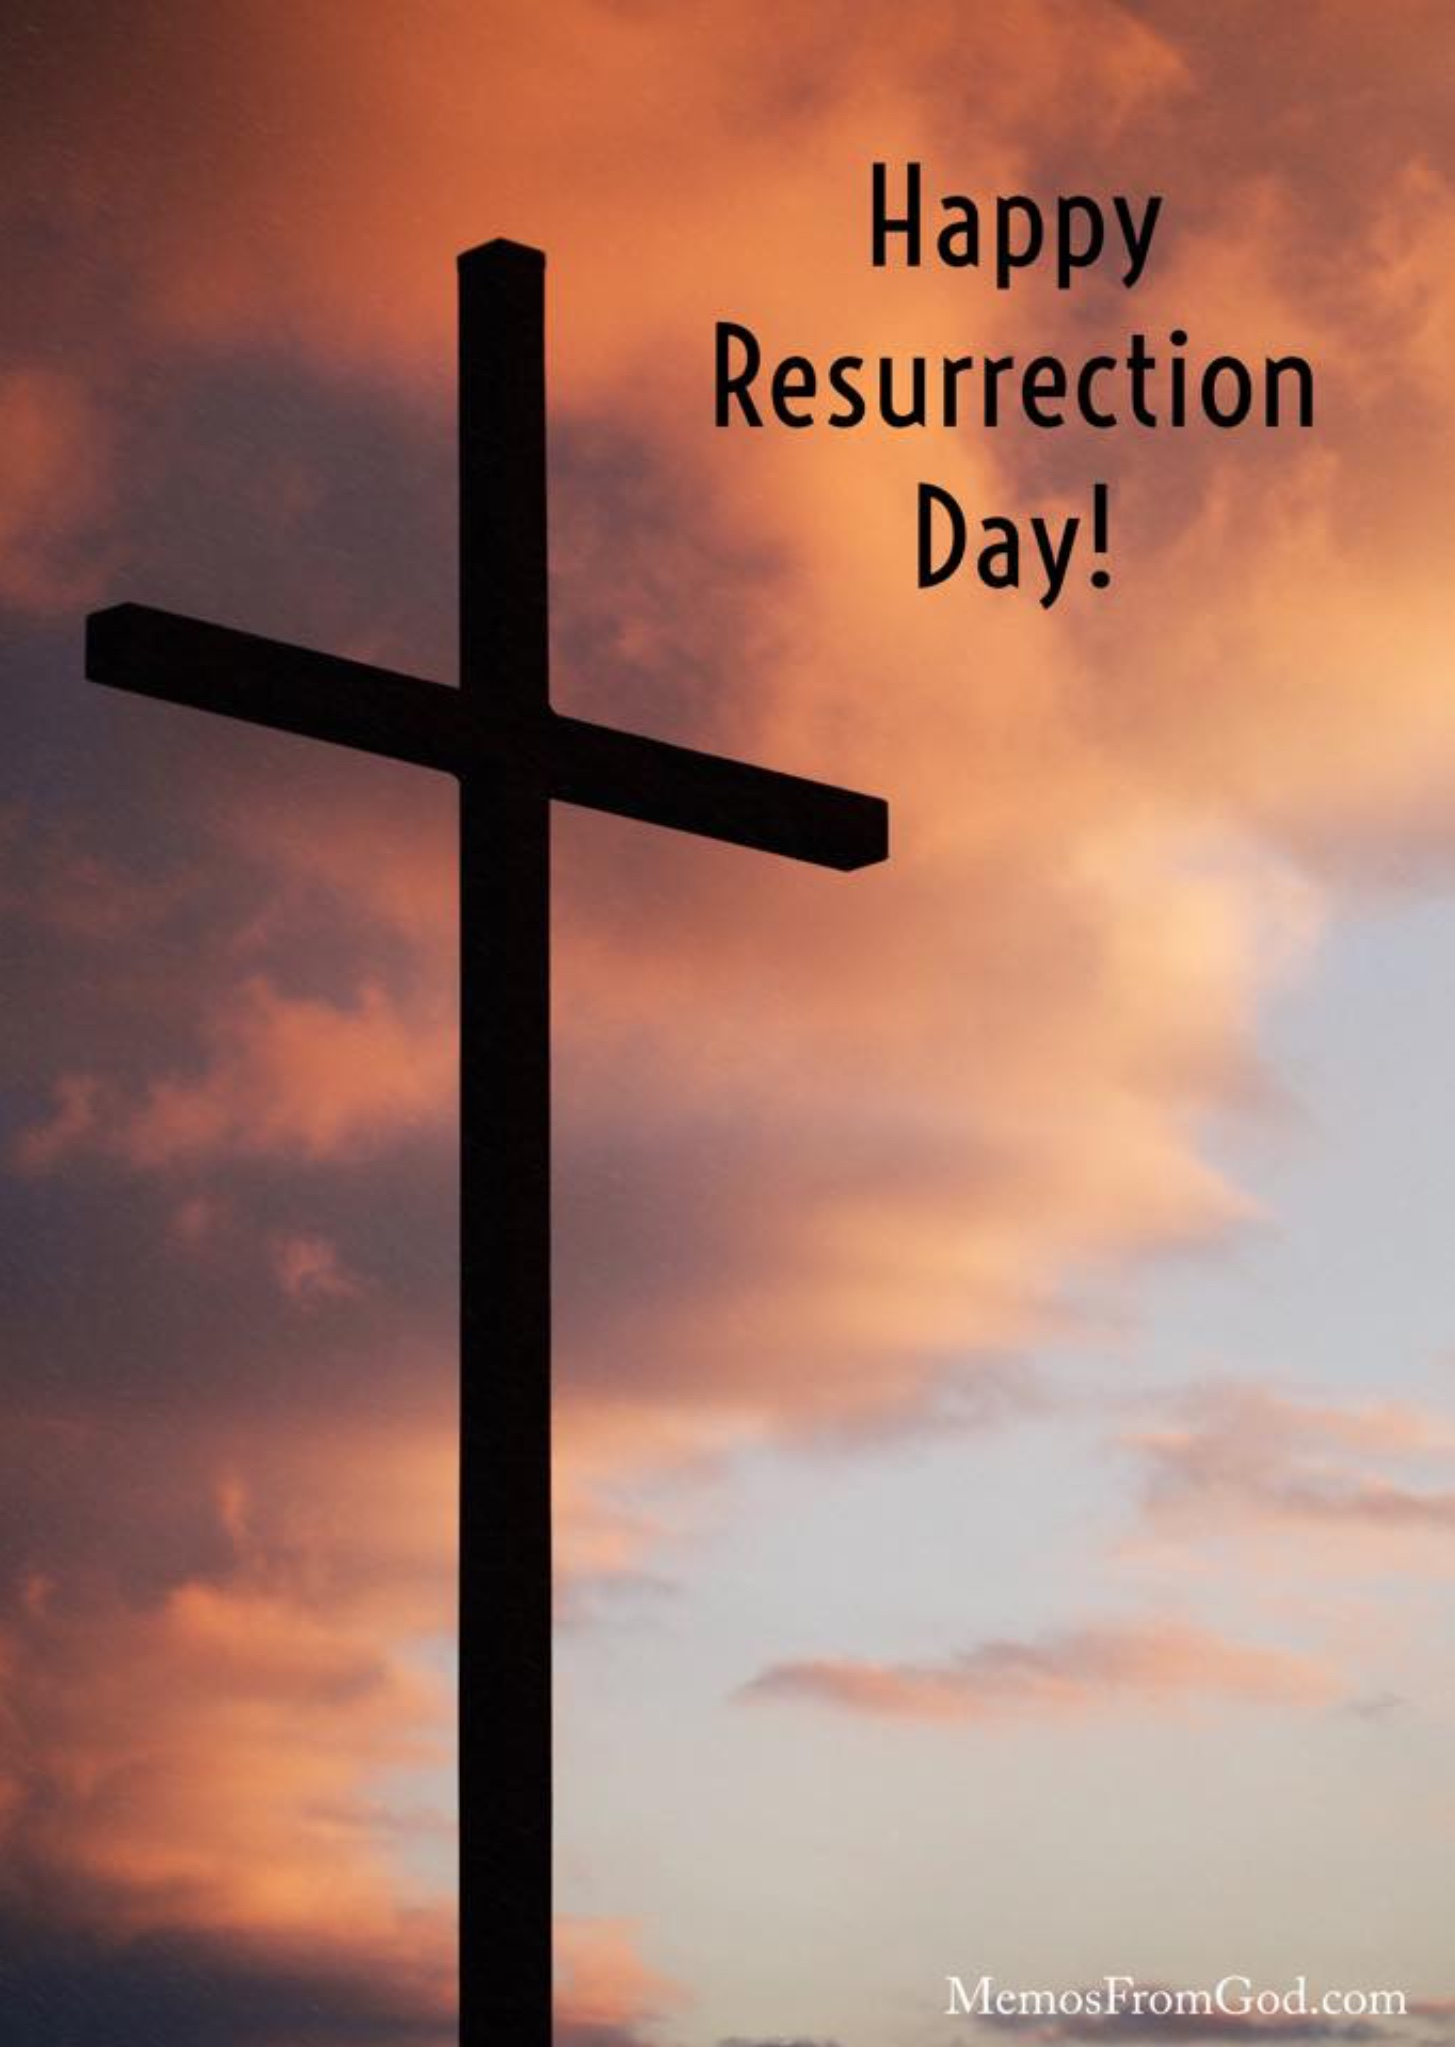 Silhouette of an empty cross in front of a dark orange sky. Caption: Happy Resurrection Day!